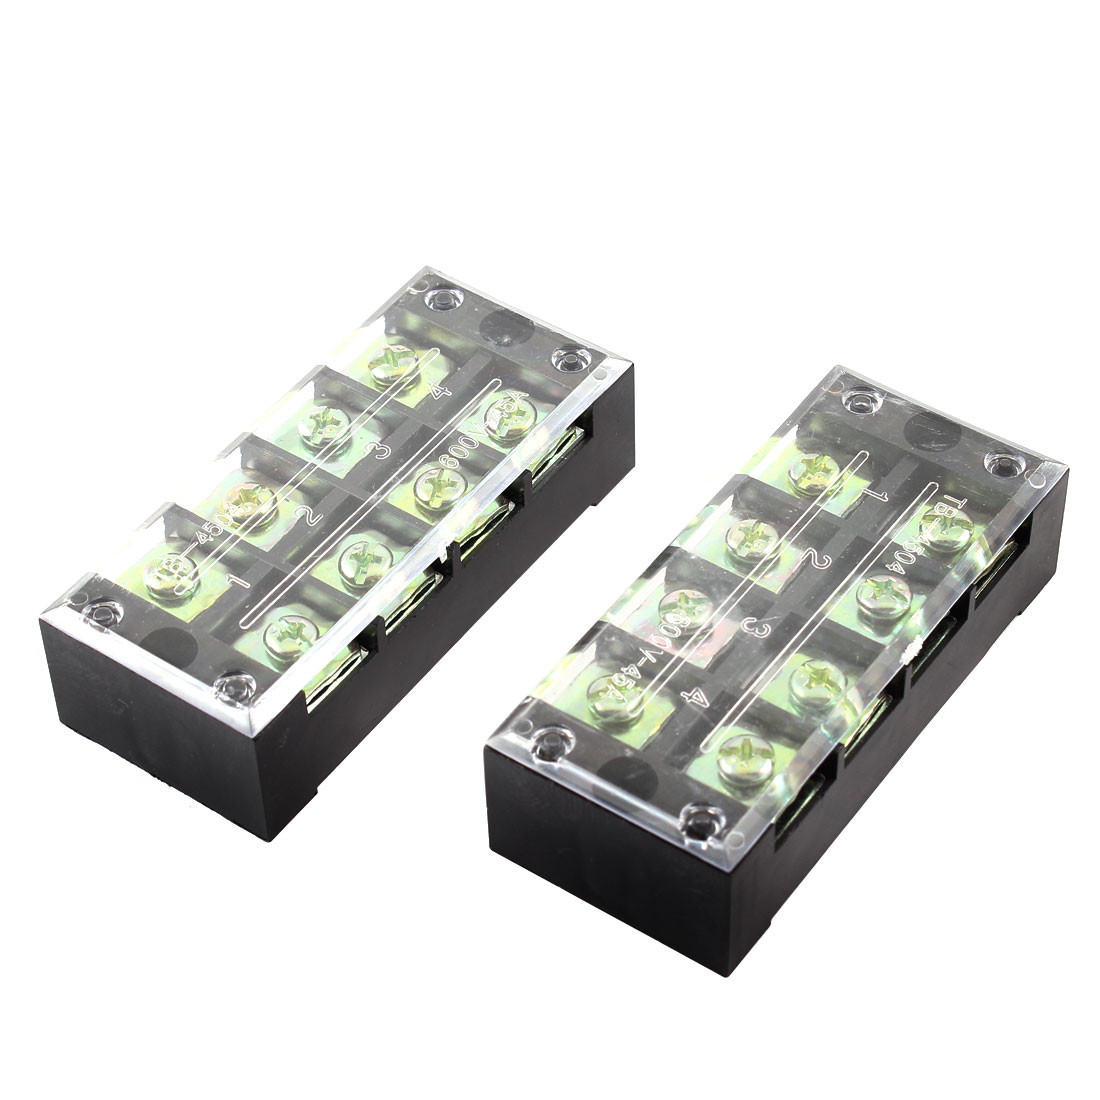 600V 45A Dual Row 4P Screw Connector Electric Barrier Terminal Block Strip 2 Pcs